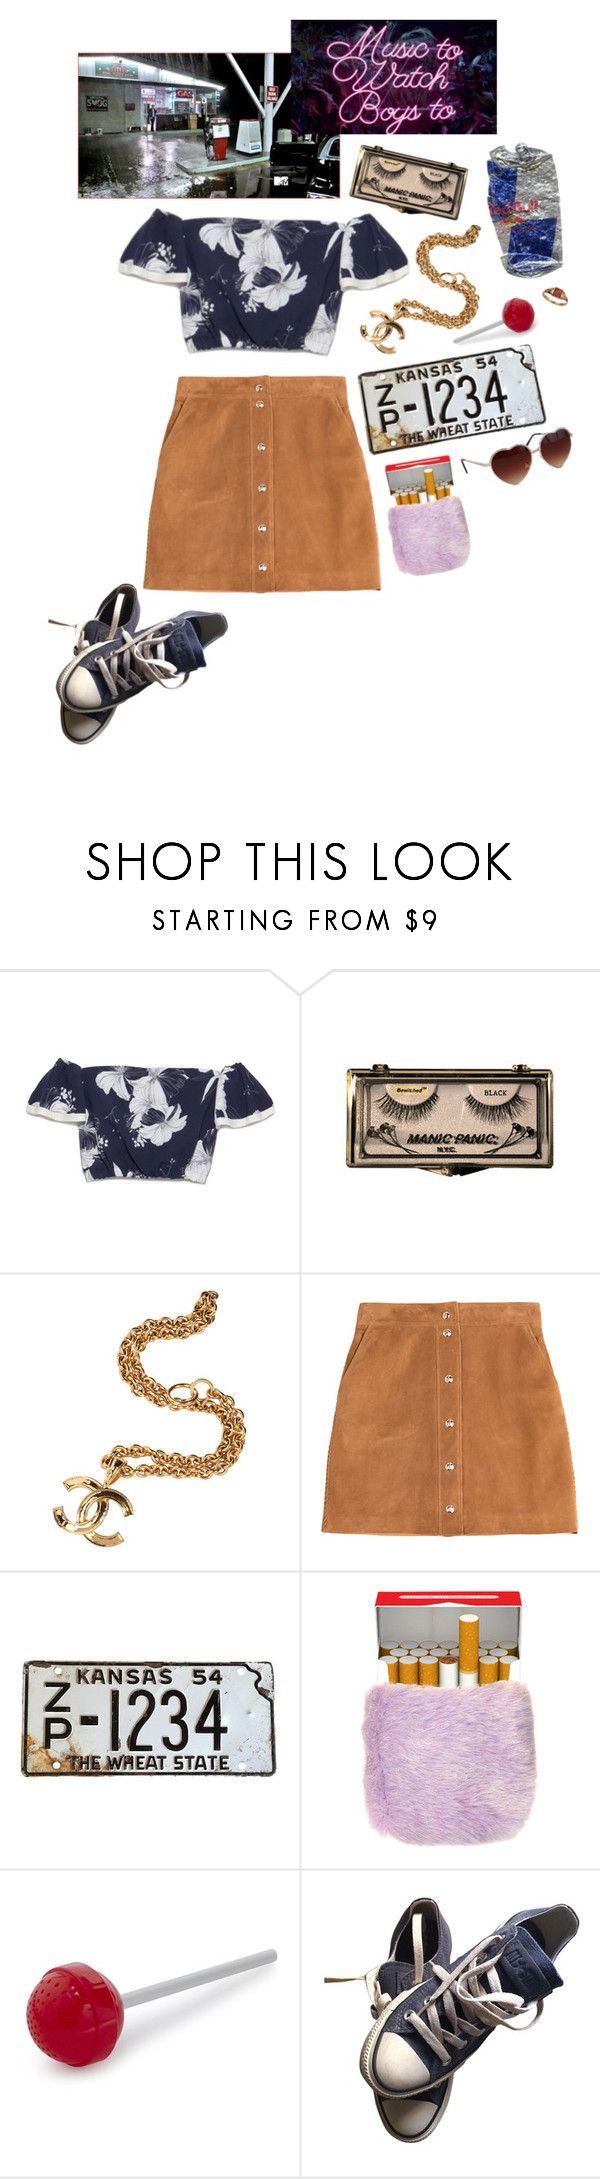 """queen of the gas station"" by psychedlia ❤ liked on Polyvore featuring Chanel, GAS Jeans, Emilio Pucci, Fred, Converse and lanadelrey"